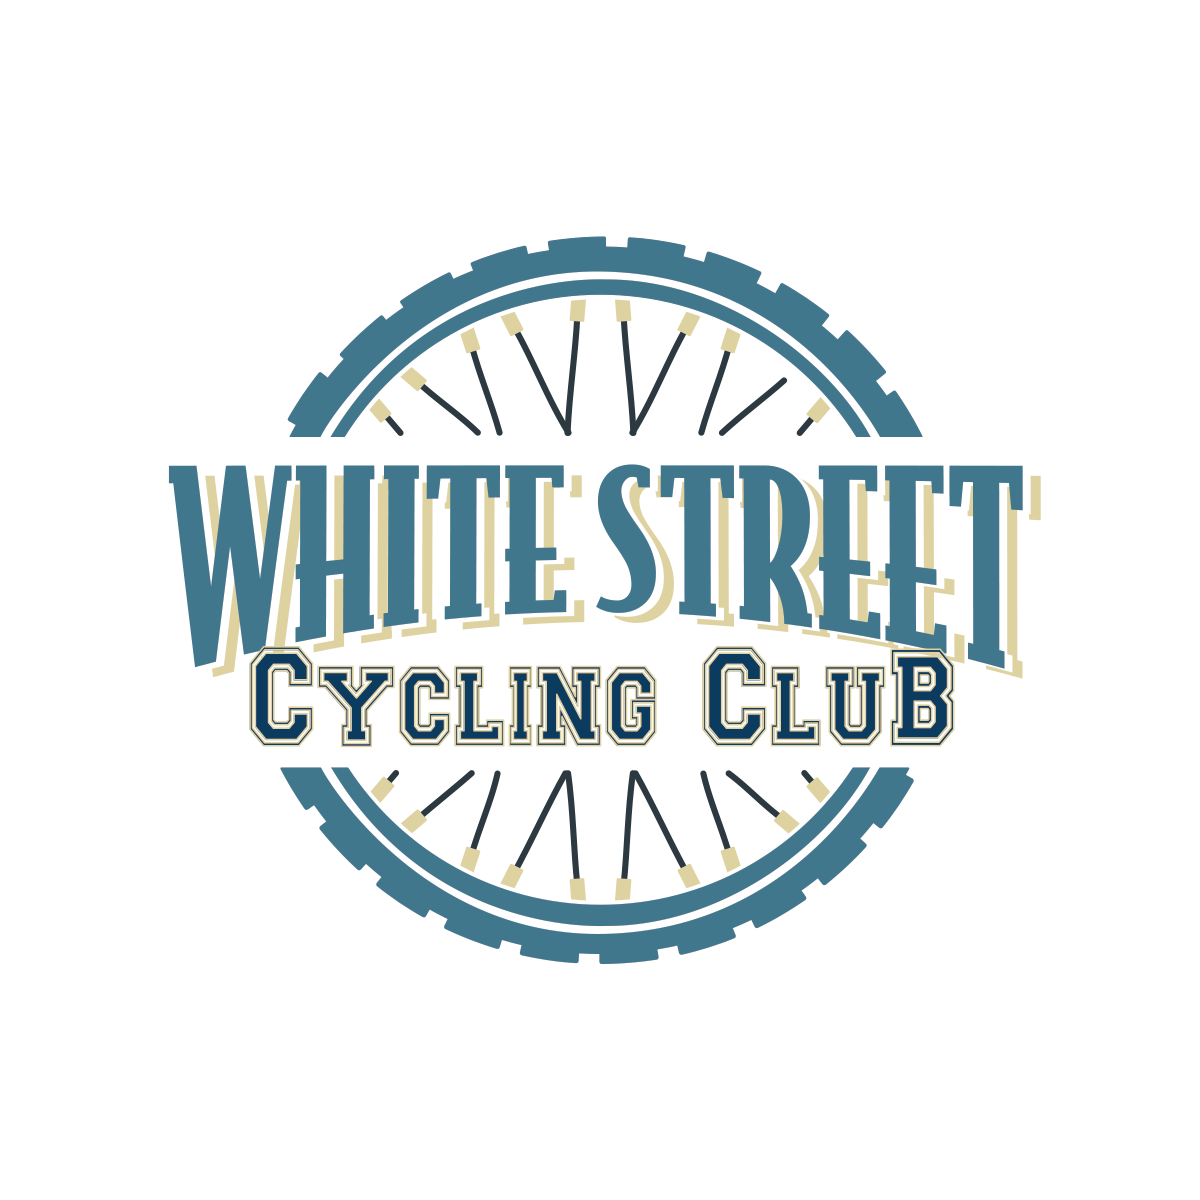 White Street Cycling Club Logo Transparent Background.png